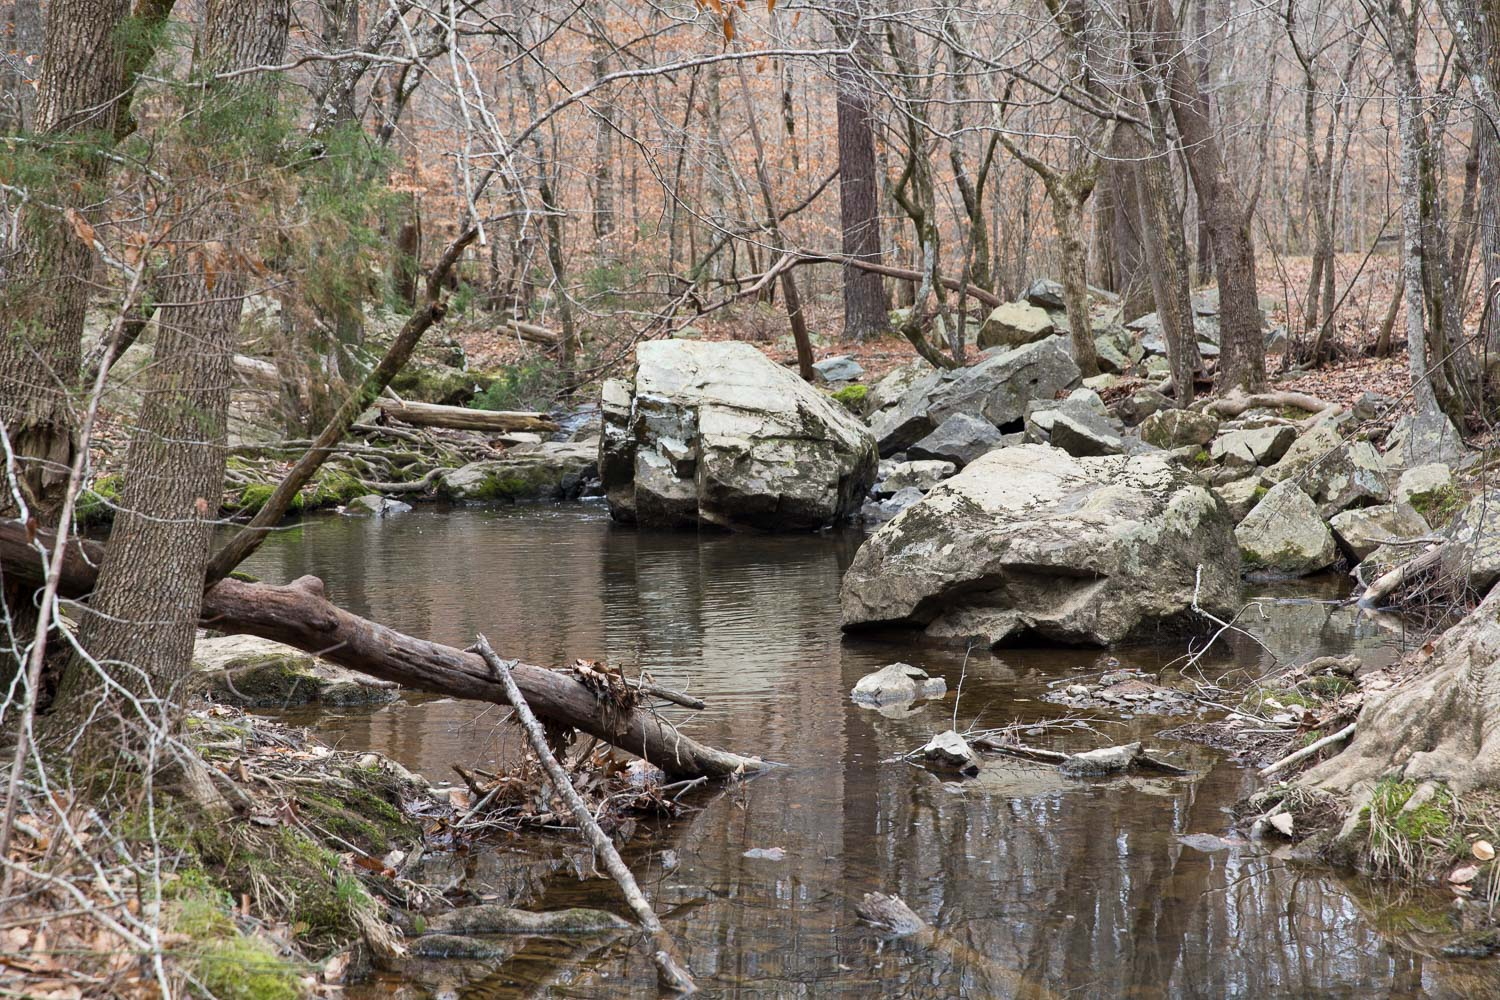 Adams Tract meets Bolin Creek in Carrboro